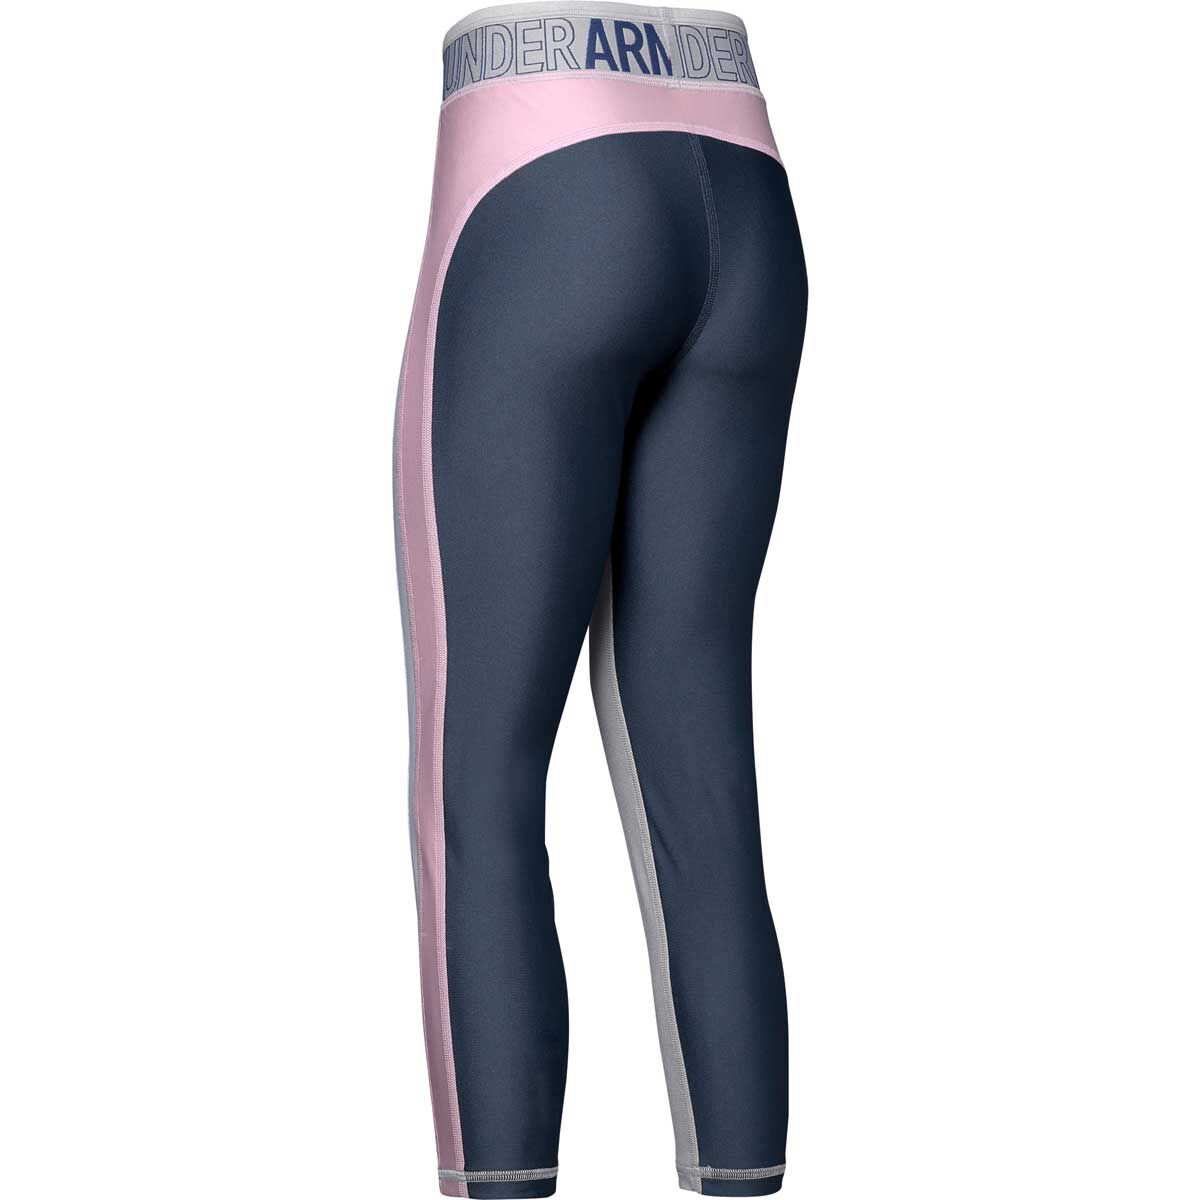 Under Armour Girls Fitness Leggings Trousers or Shorts